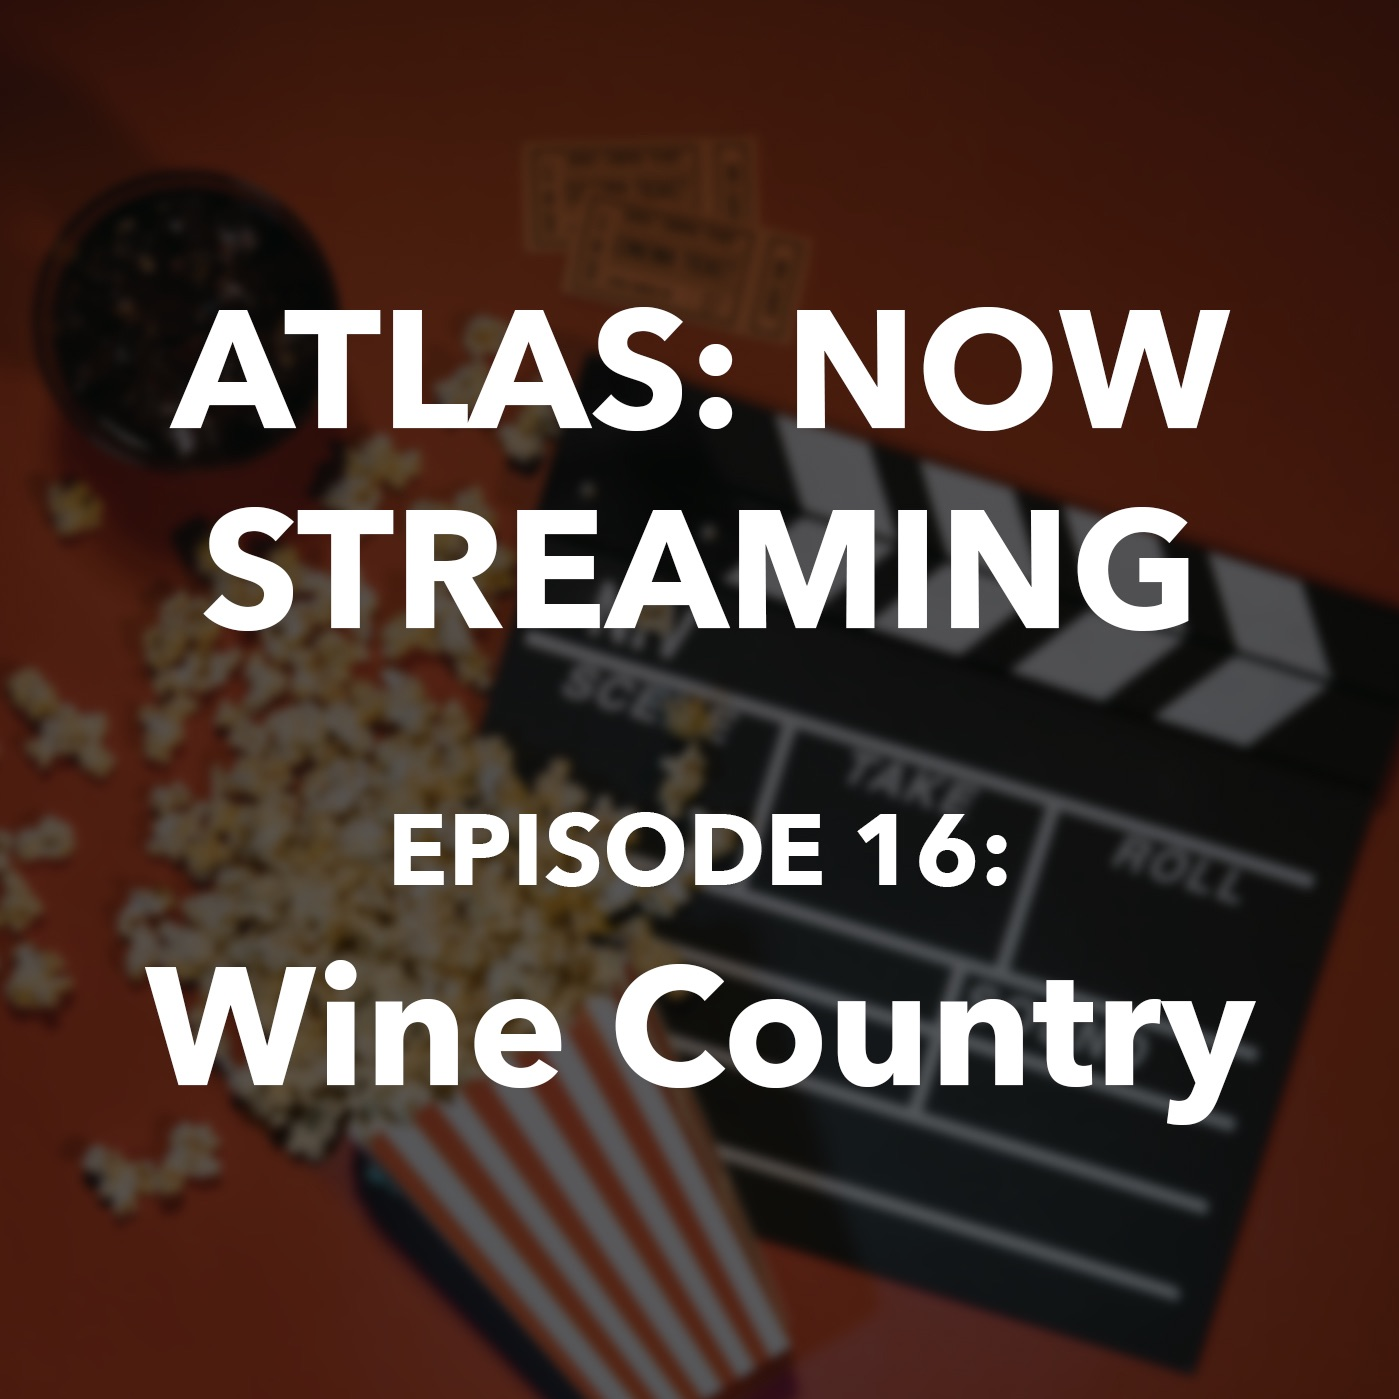 Atlas: Now Streaming Episode 16 - Wine Country